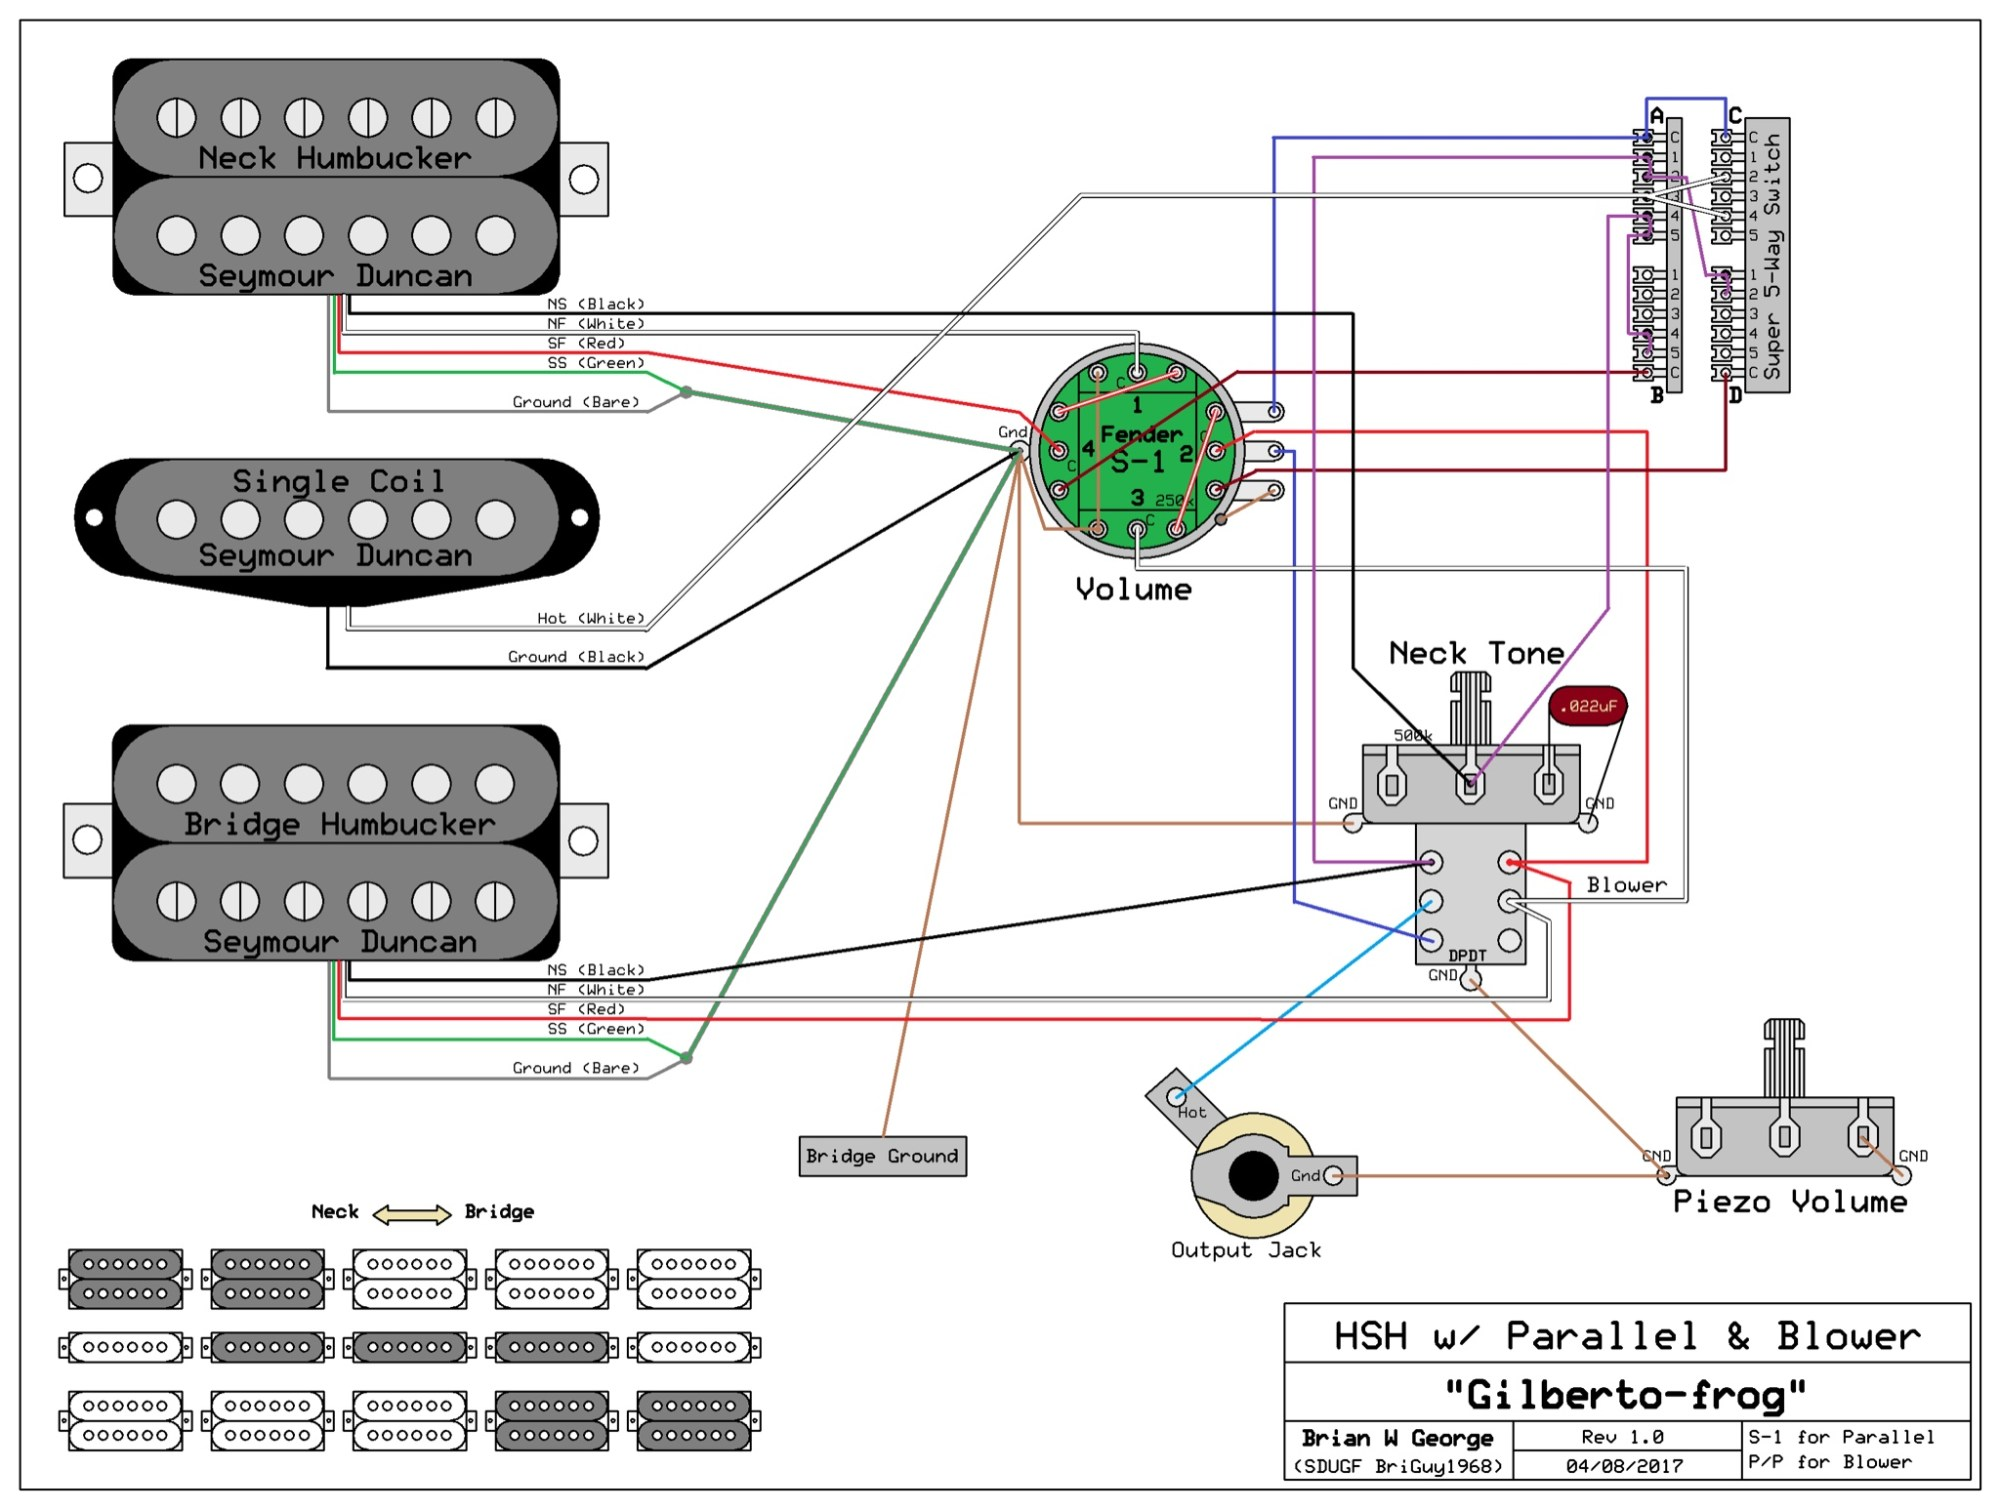 hight resolution of hsh wiring typical wiring diagram experthsh wiring typical wiring diagram load hsh wiring typical